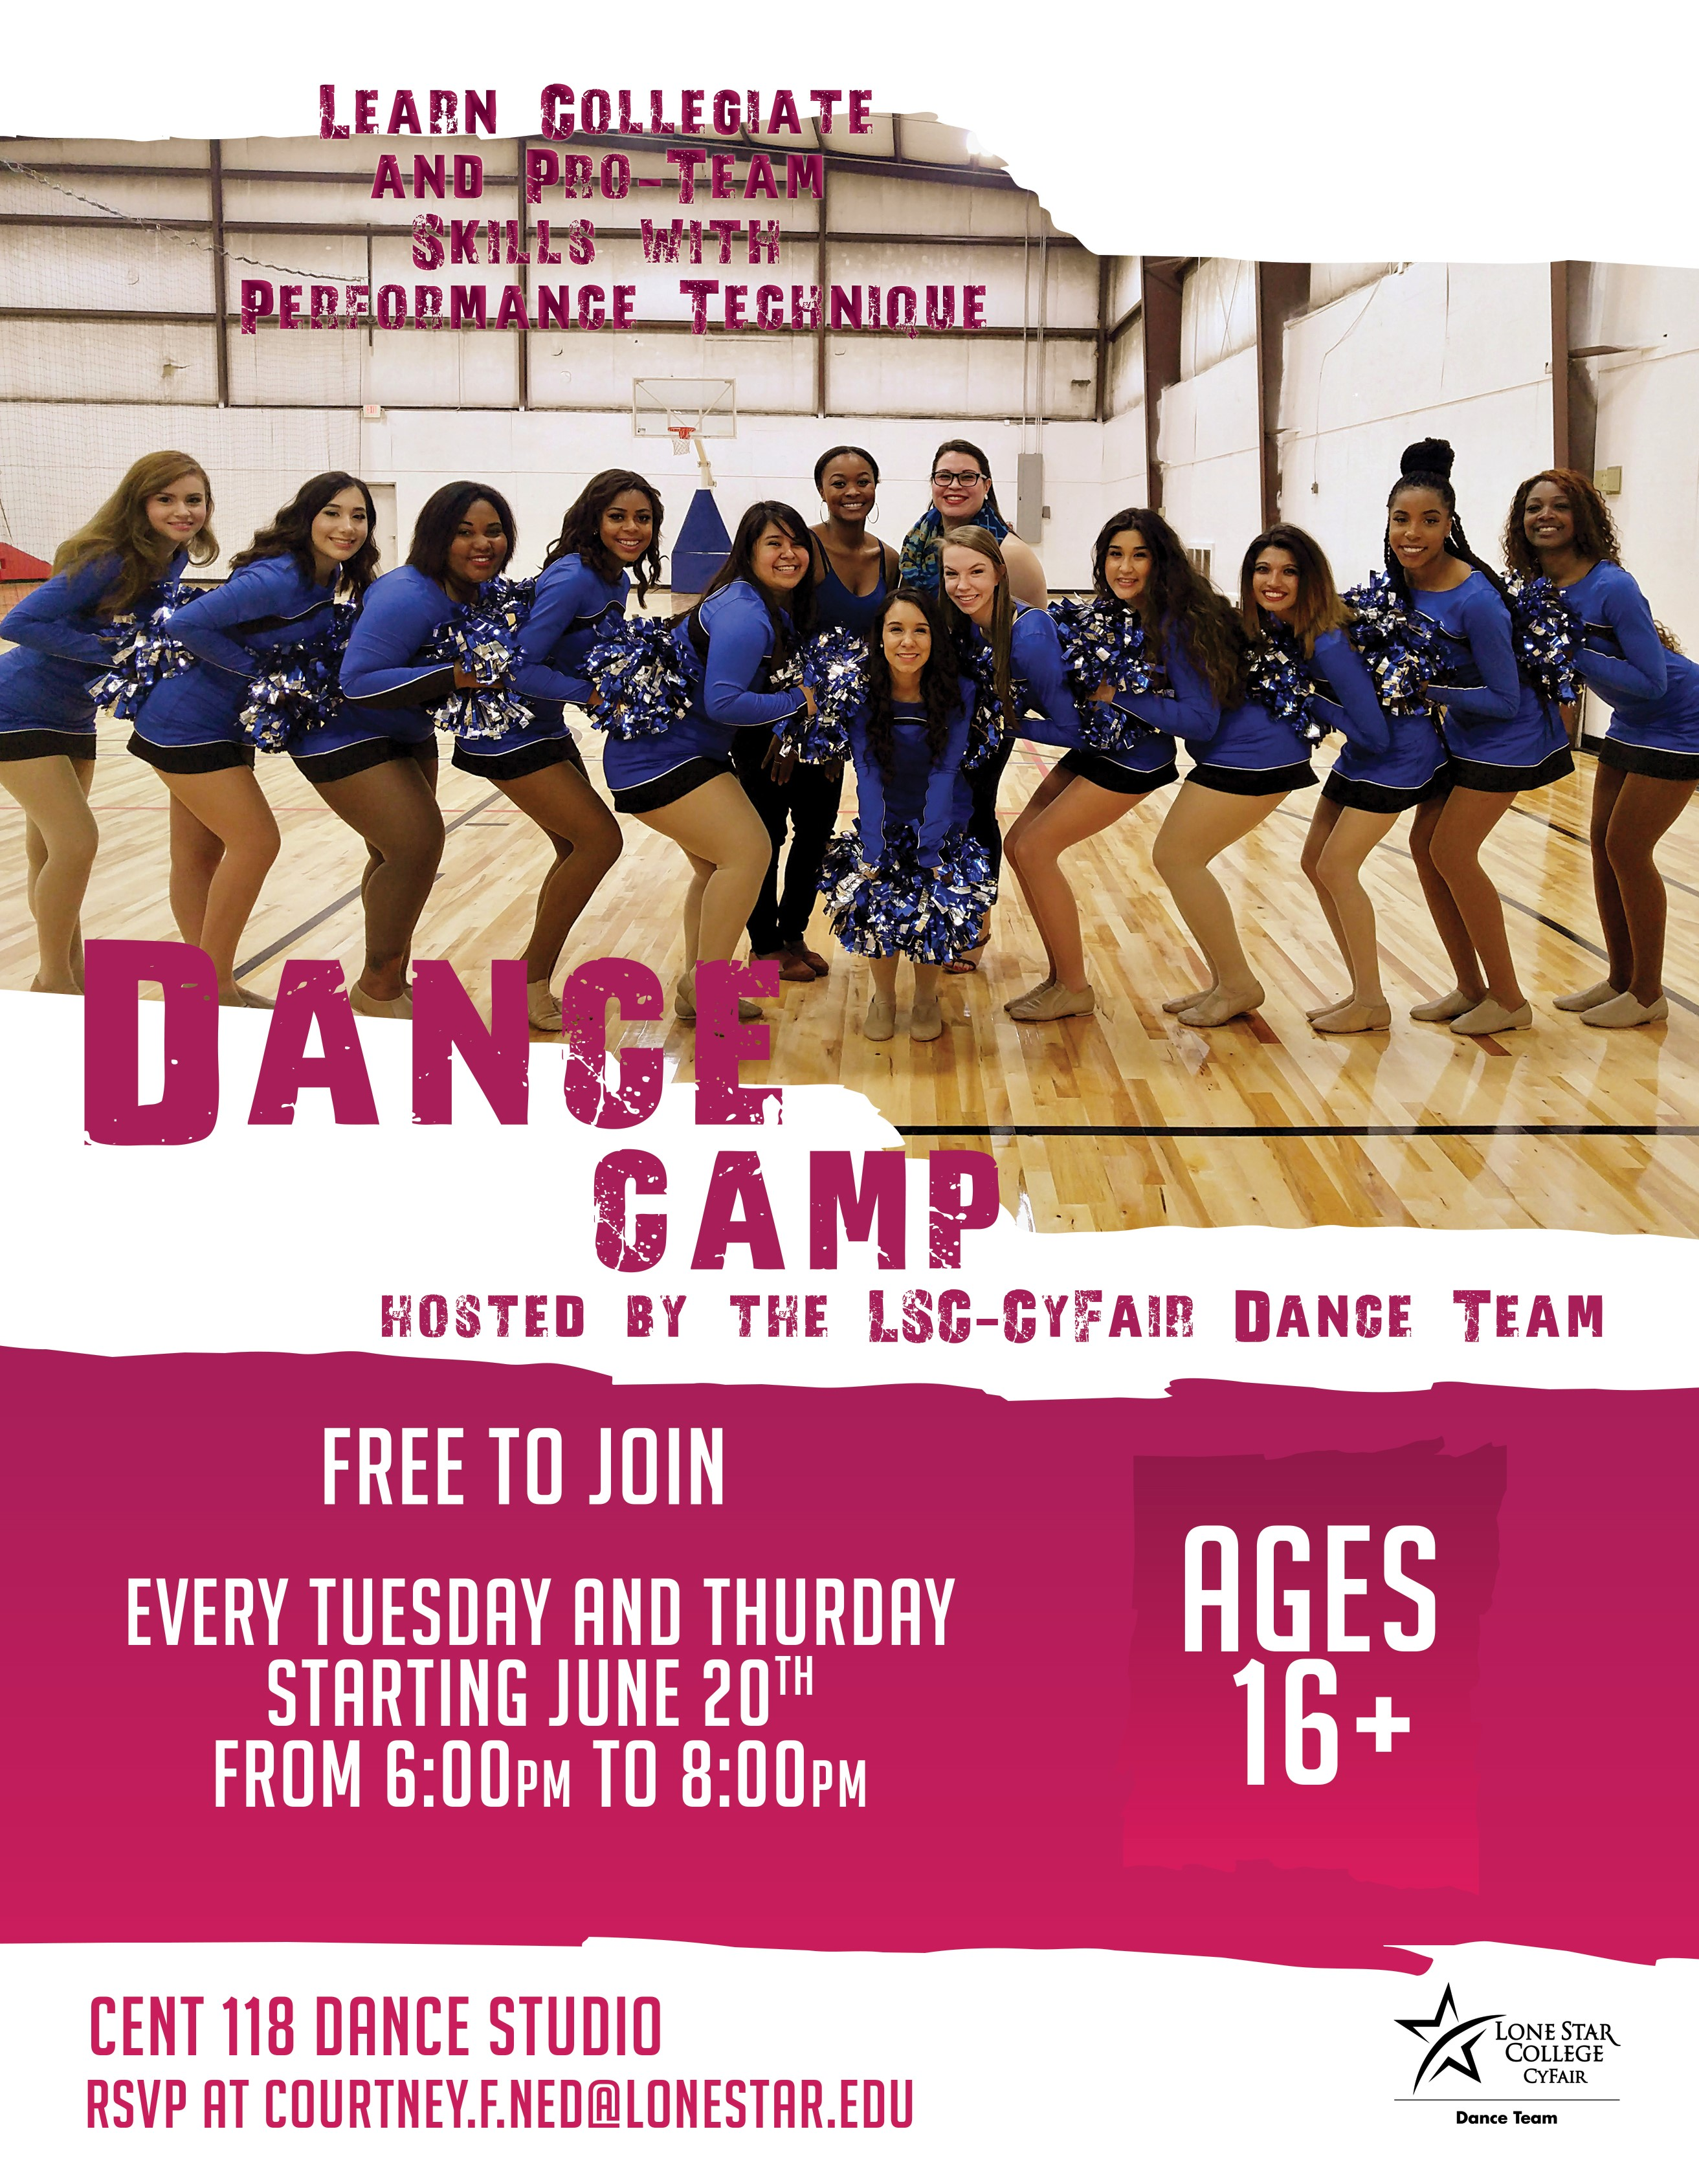 Free Summer Dance Camp beginning June 20th at 6 pm. For more details email CF-RecSports@lonestar.edu.